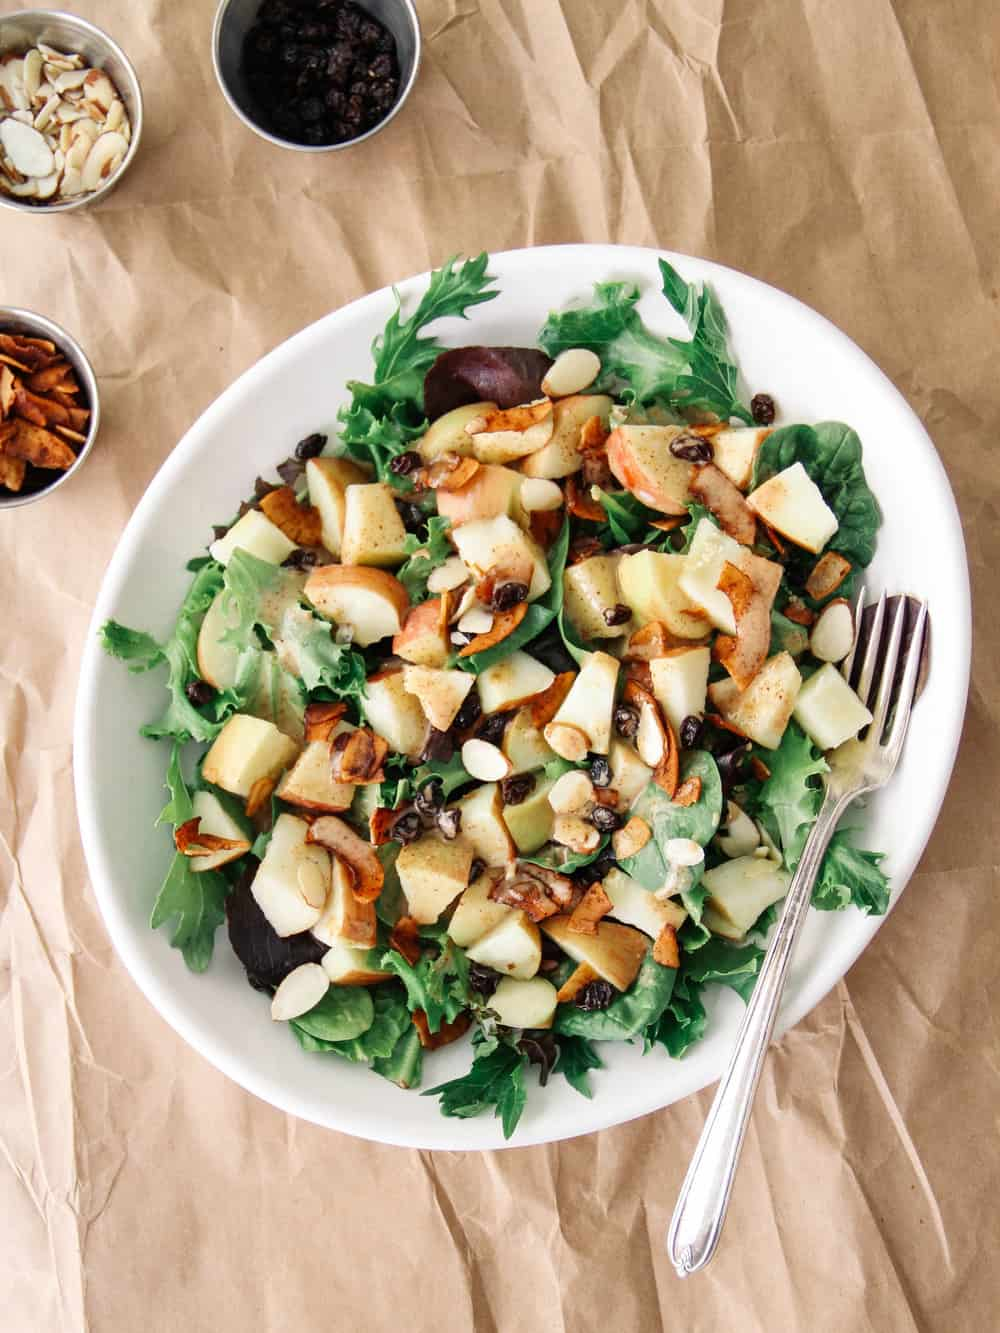 CRISP APPLE & COCONUT BACON SALAD